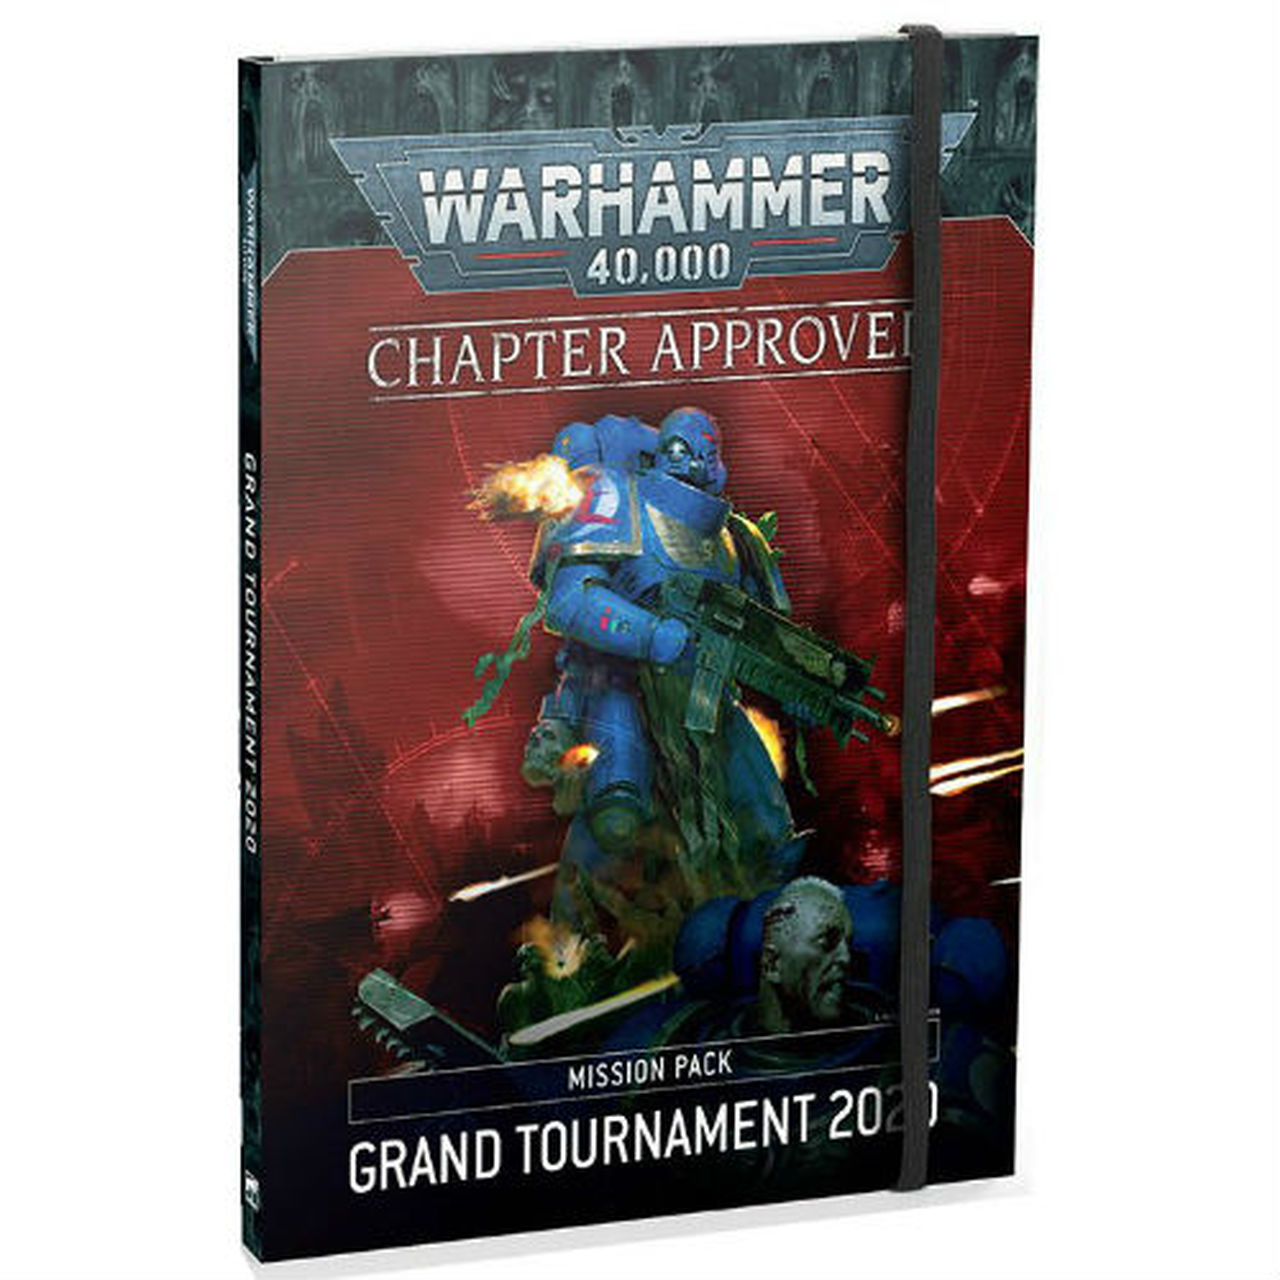 Warhammer 40K Grand Tournament 2020